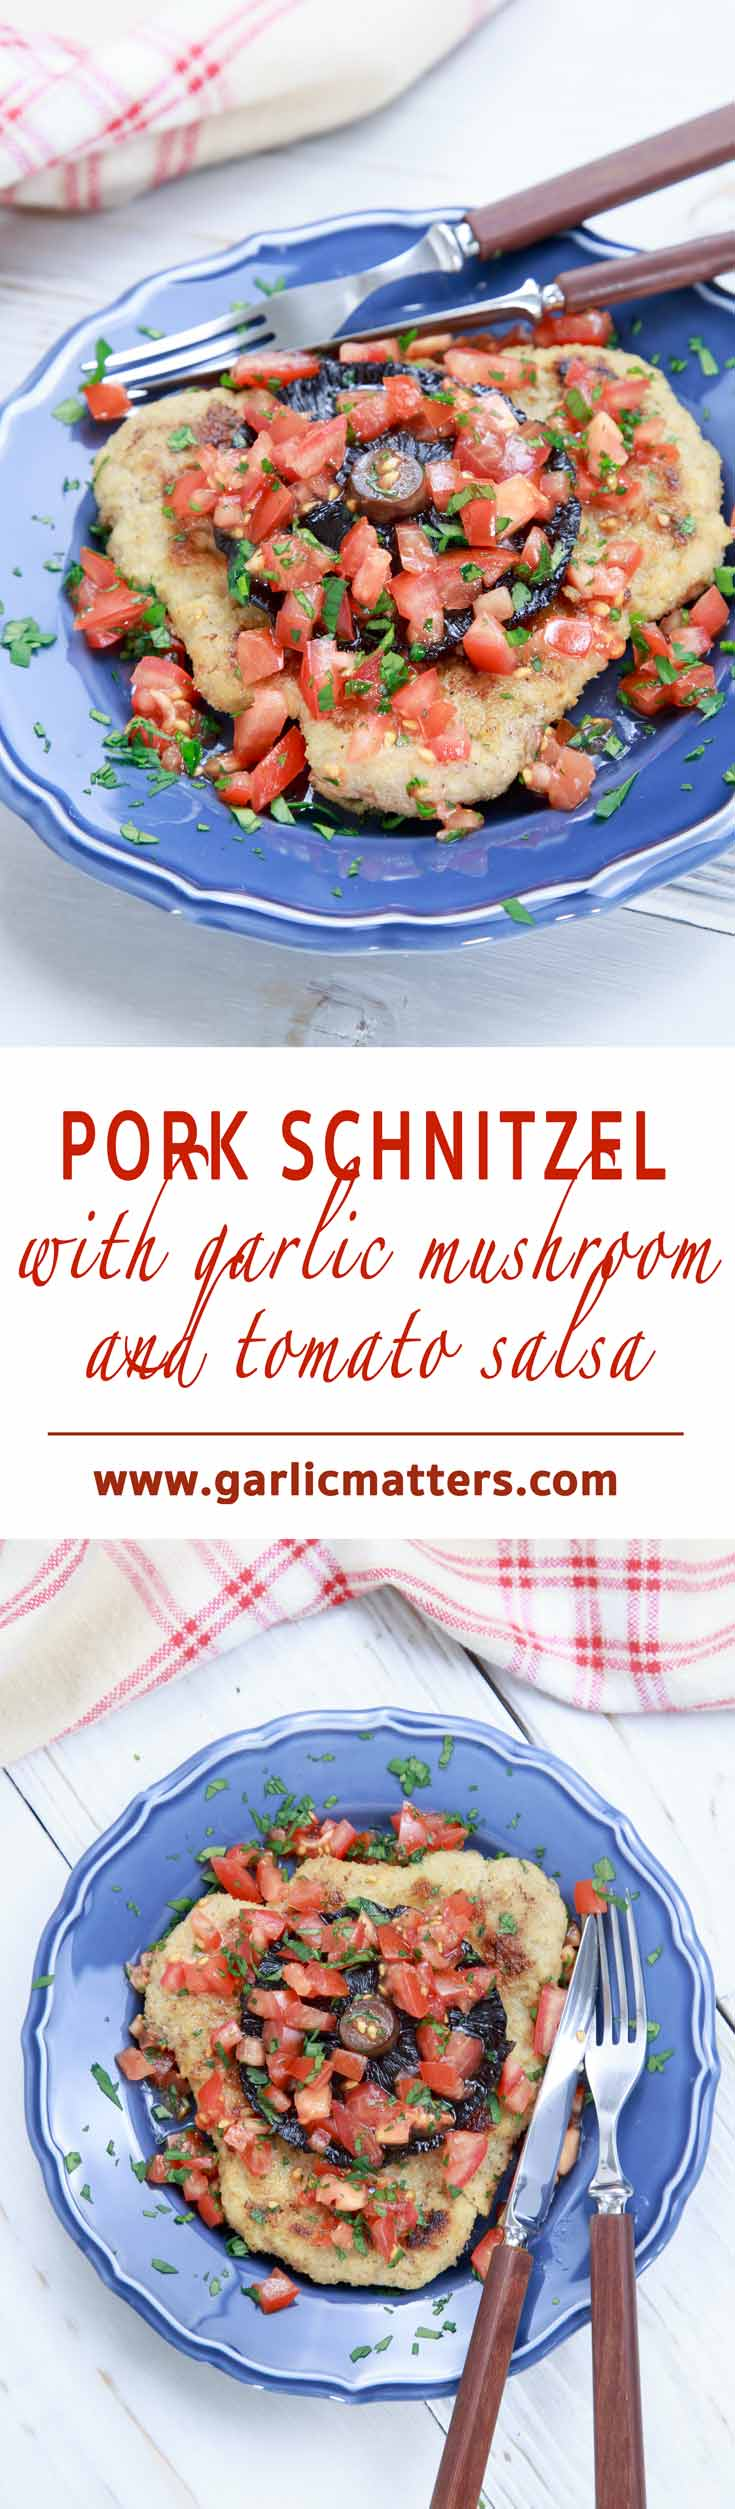 Pork Schnitzel with Garlic Mushroom and Tomato Salsa Recipe - tasty, crispy, juicy, satisfying, easy to make and so worth that 25 min!